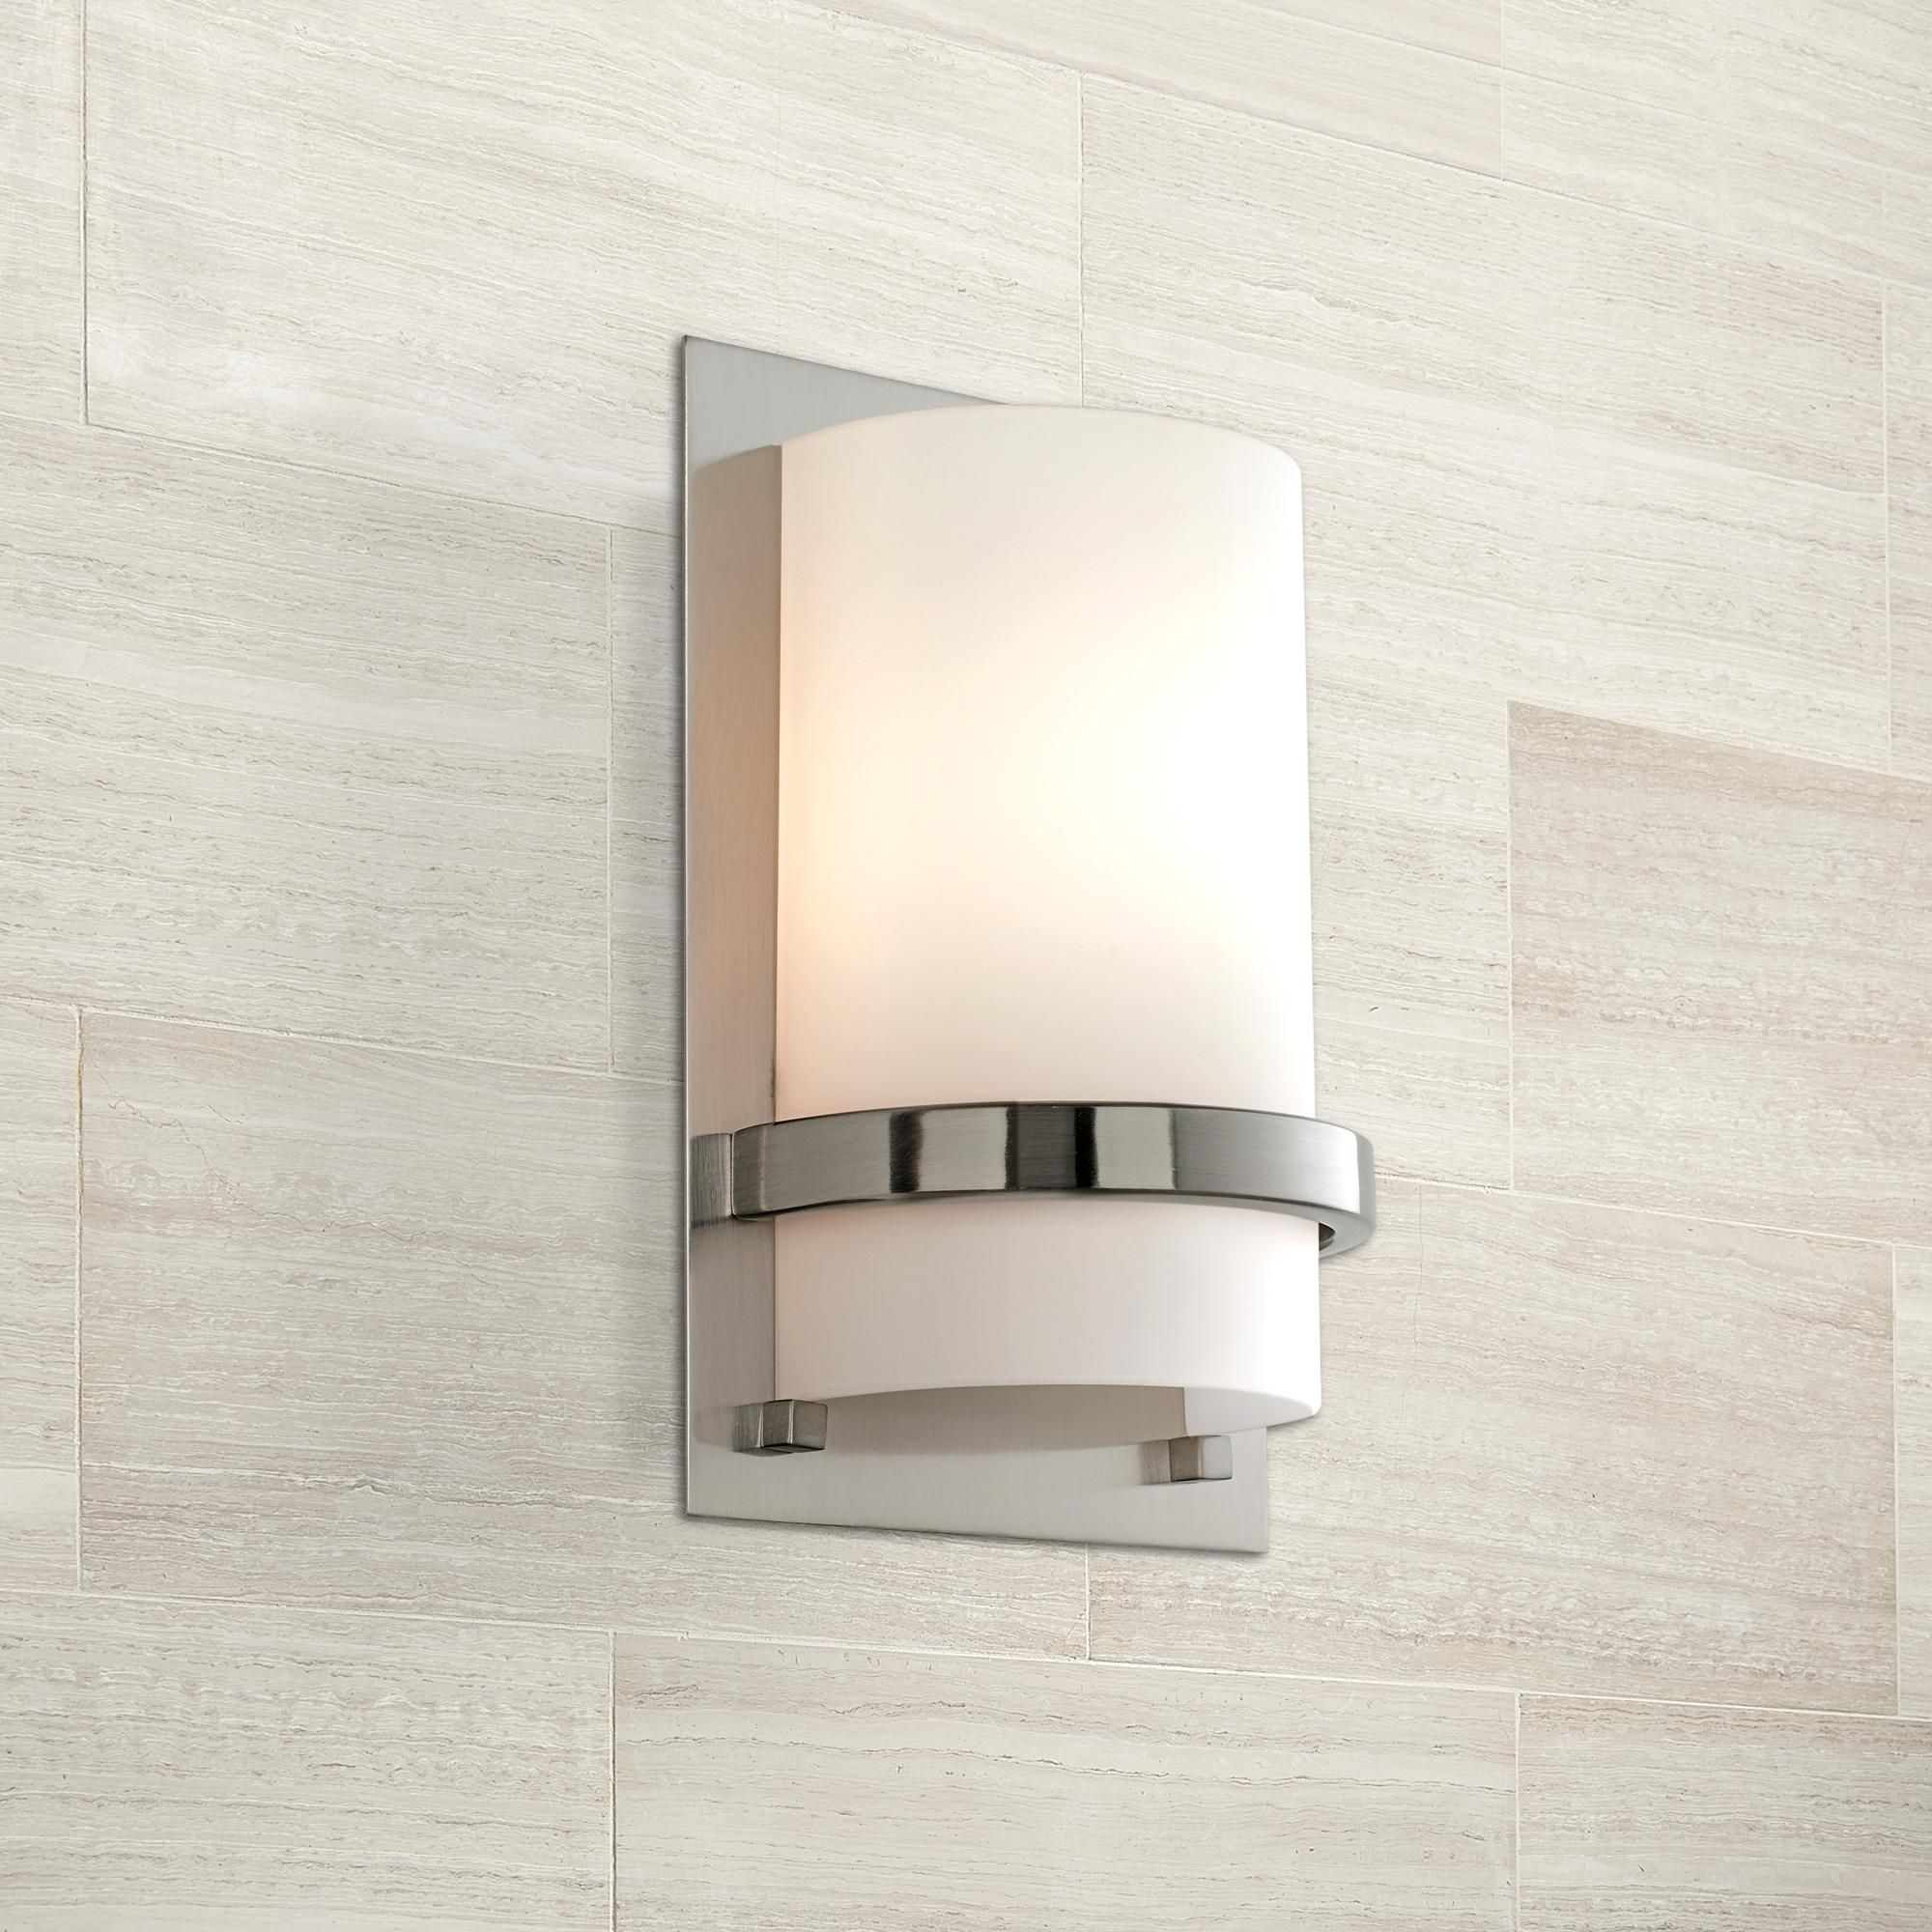 Inchh Brushed Nickel Wall Sconce